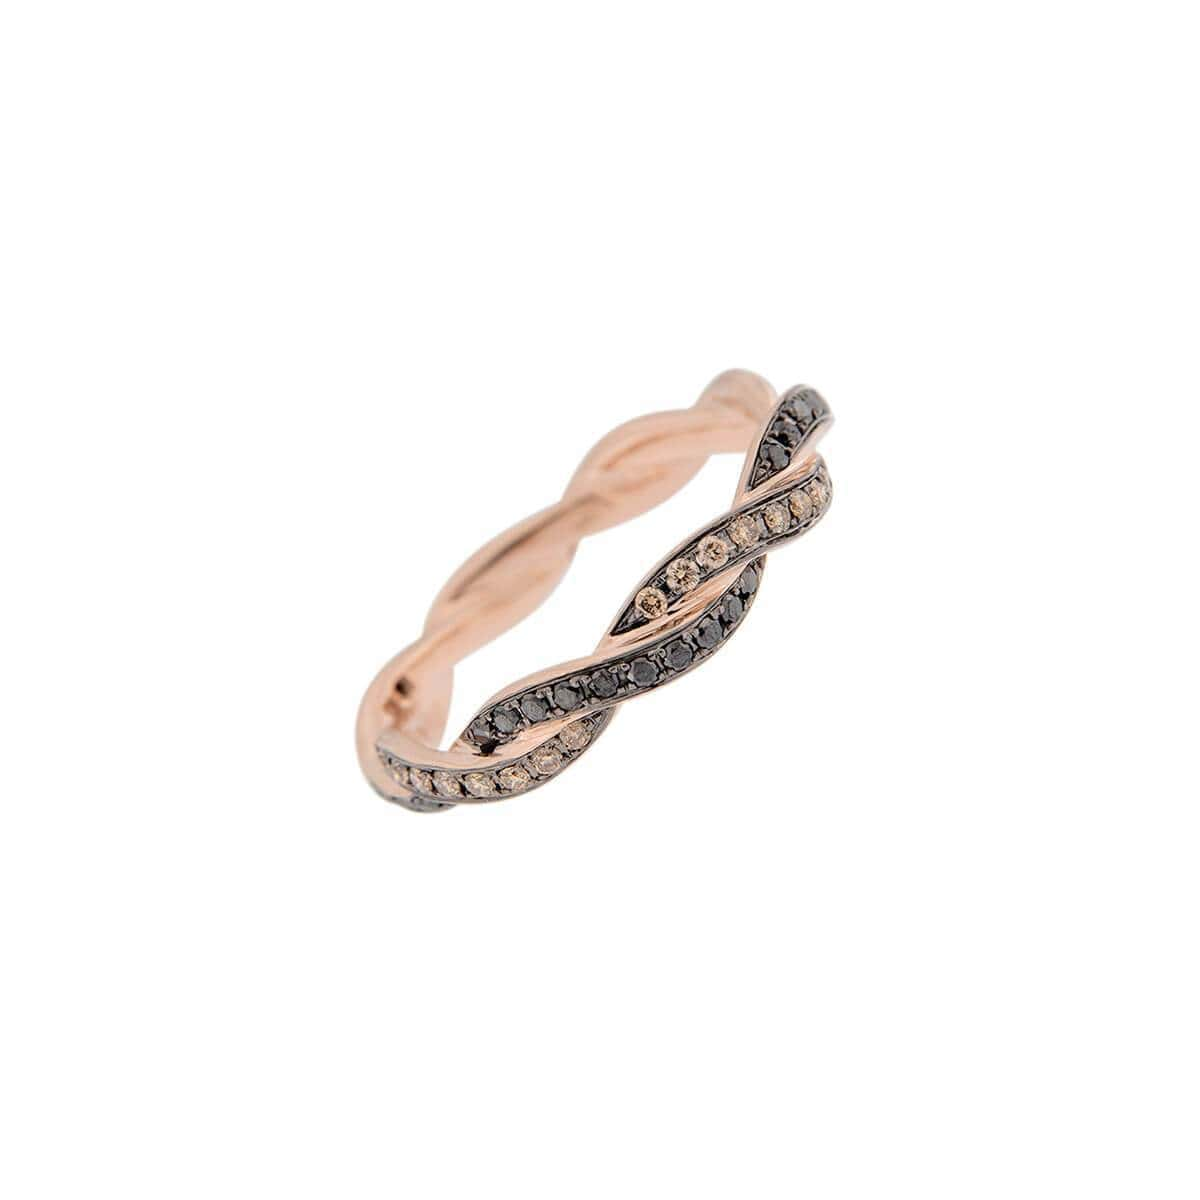 18kt Rose Gold Handcrafted Italian Eternity Band Ring